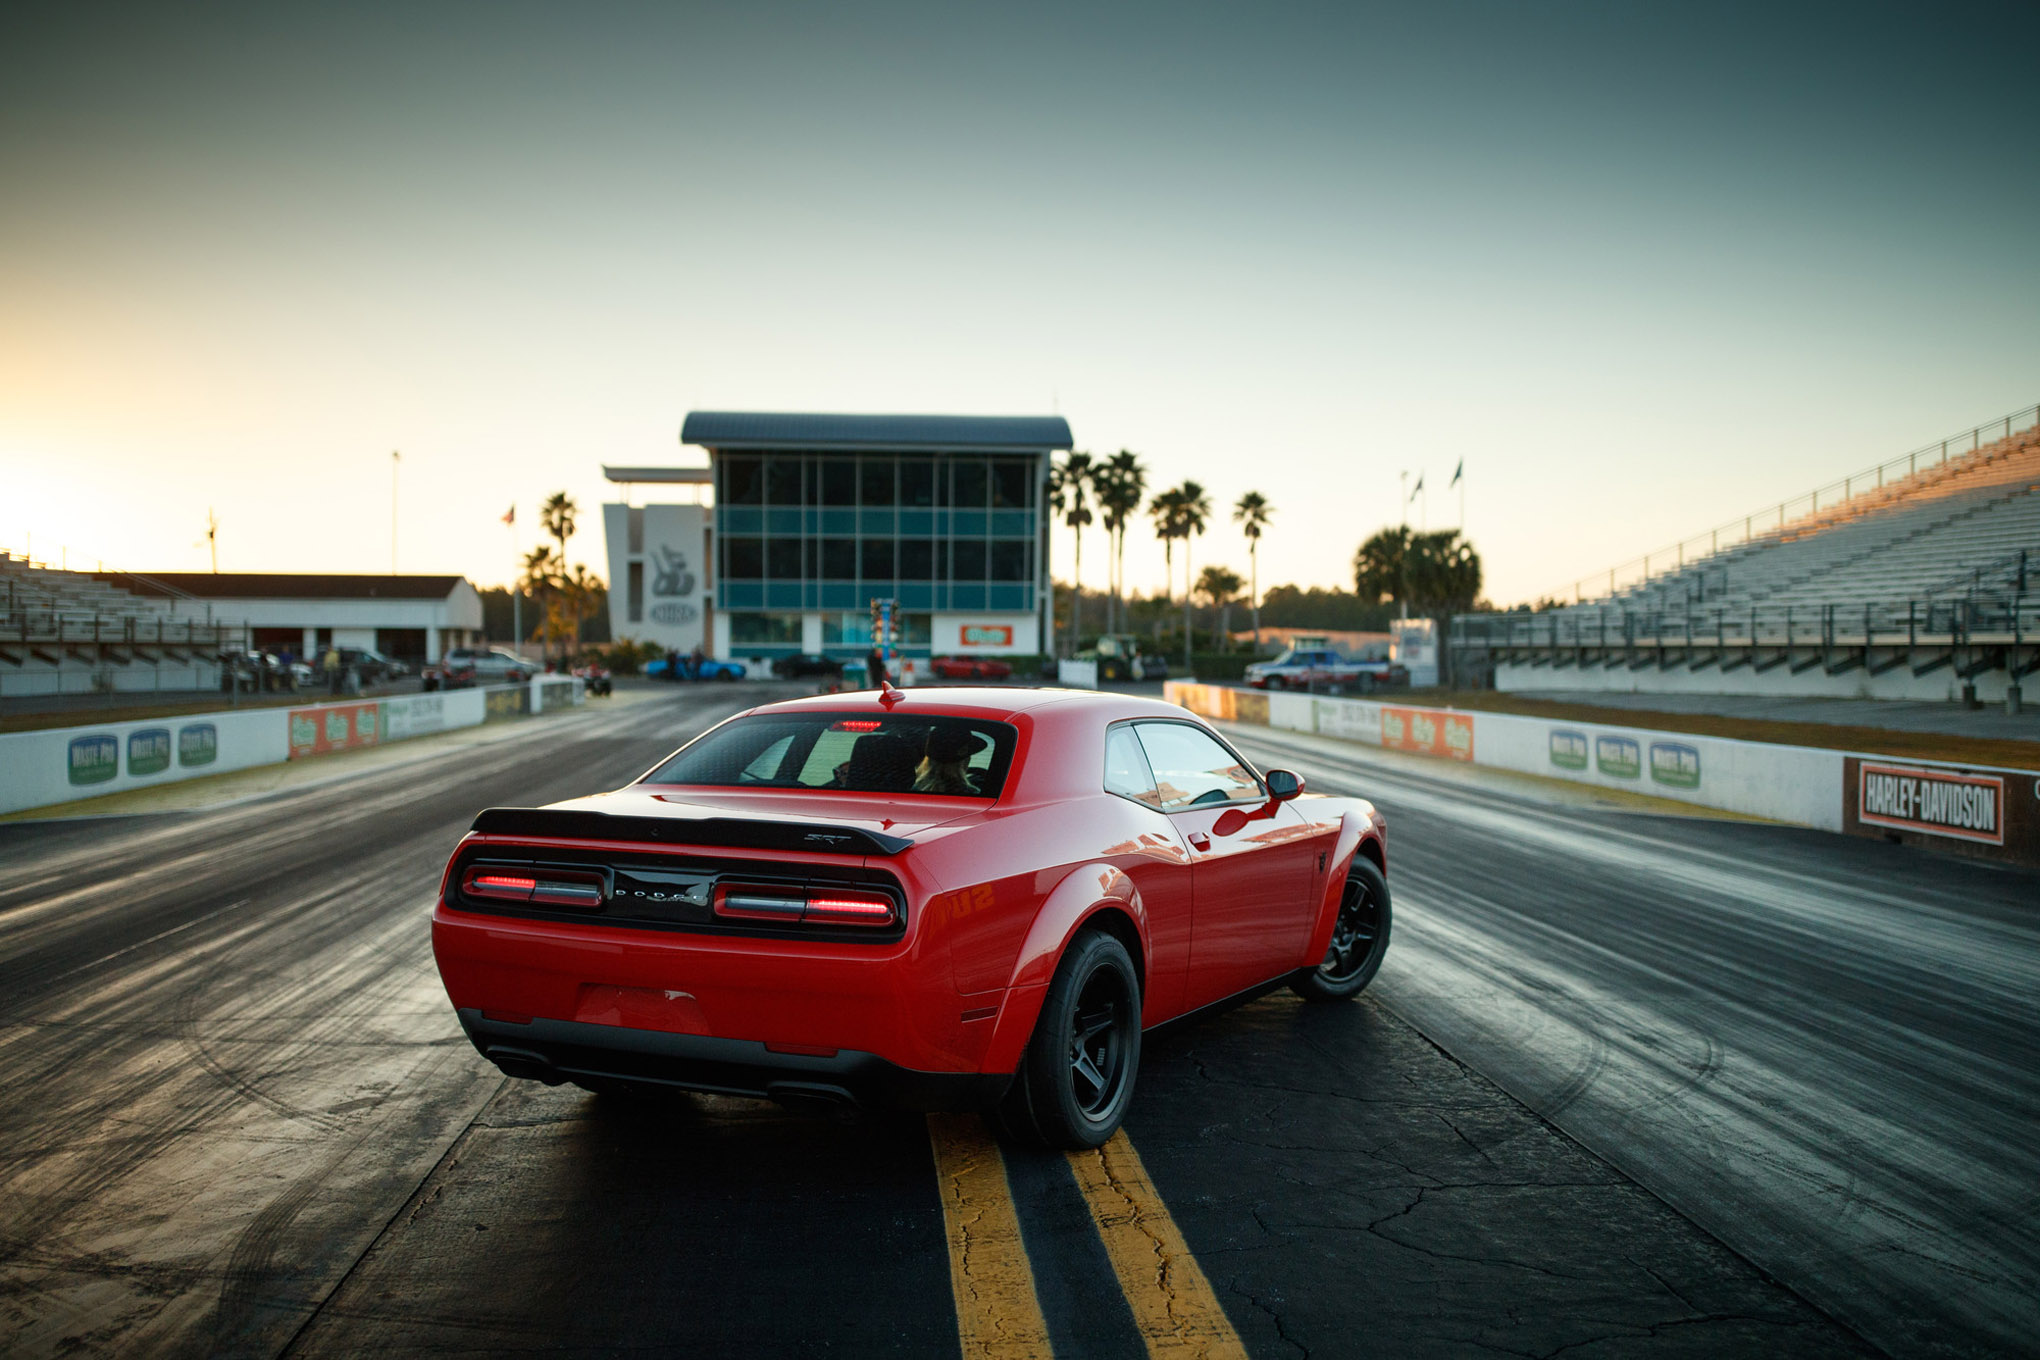 020-2018-dodge-demon.jpg